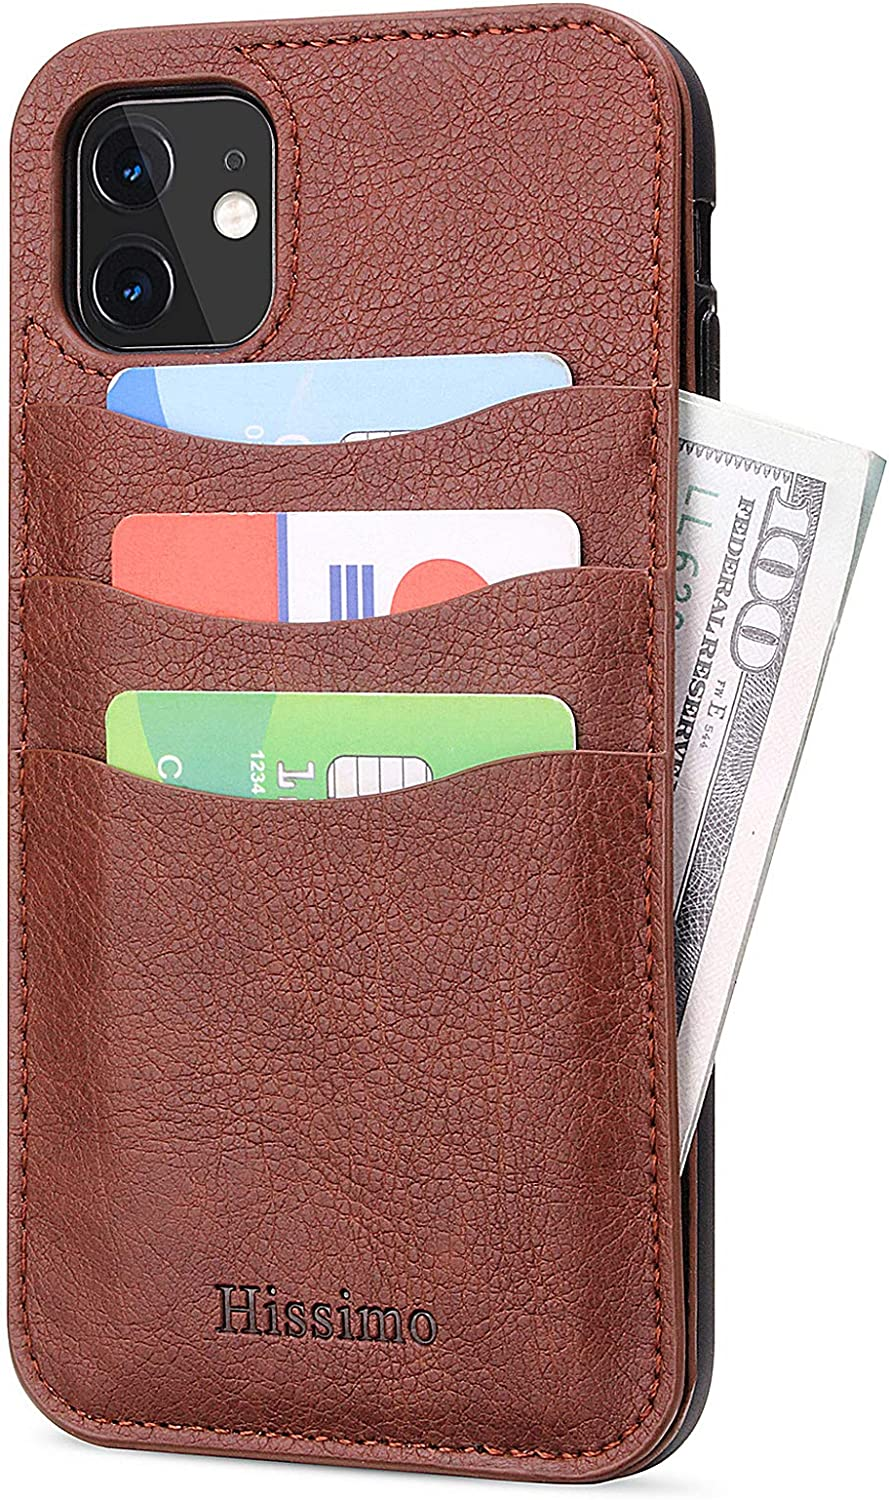 HISSIMO Wallet Case for iPhone 11 with Credit Card Holder, 3 Card Slots and 1 Cash Pocket, Slim Vintage Synthetic Leather [iPhone 11 6.1'', Coffee]